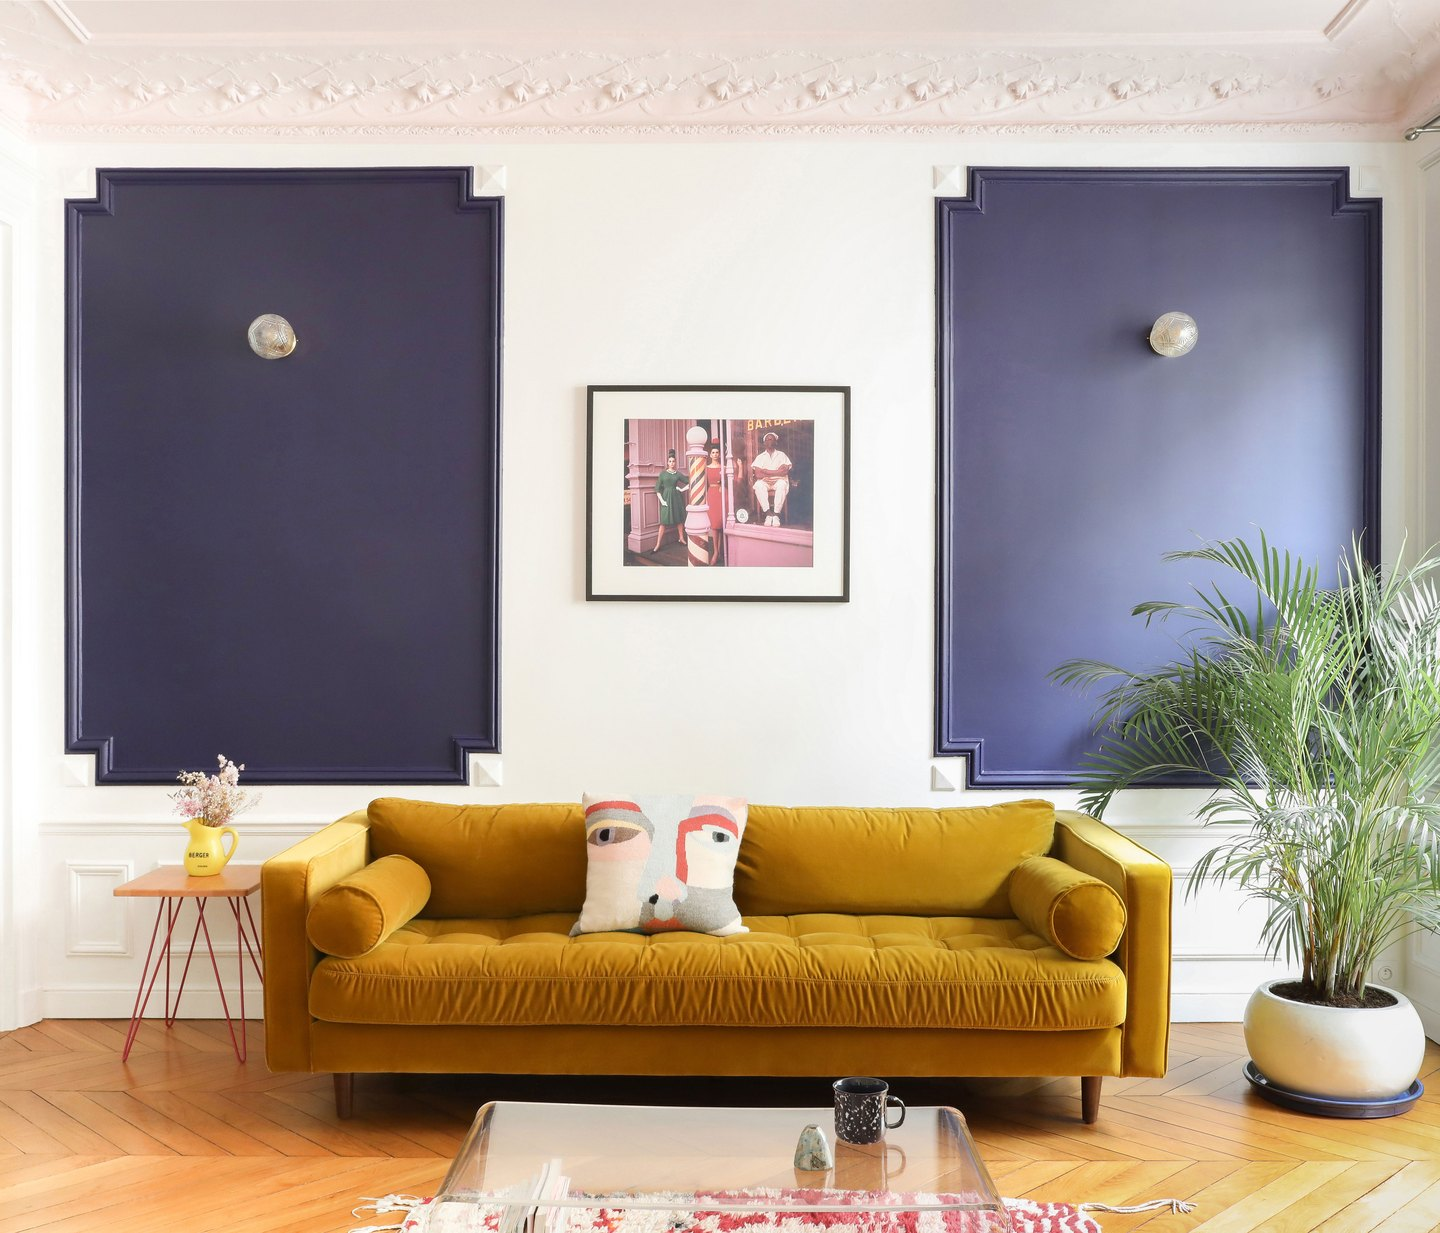 A Sleek Paris Apartment Inspired by the Memphis Group